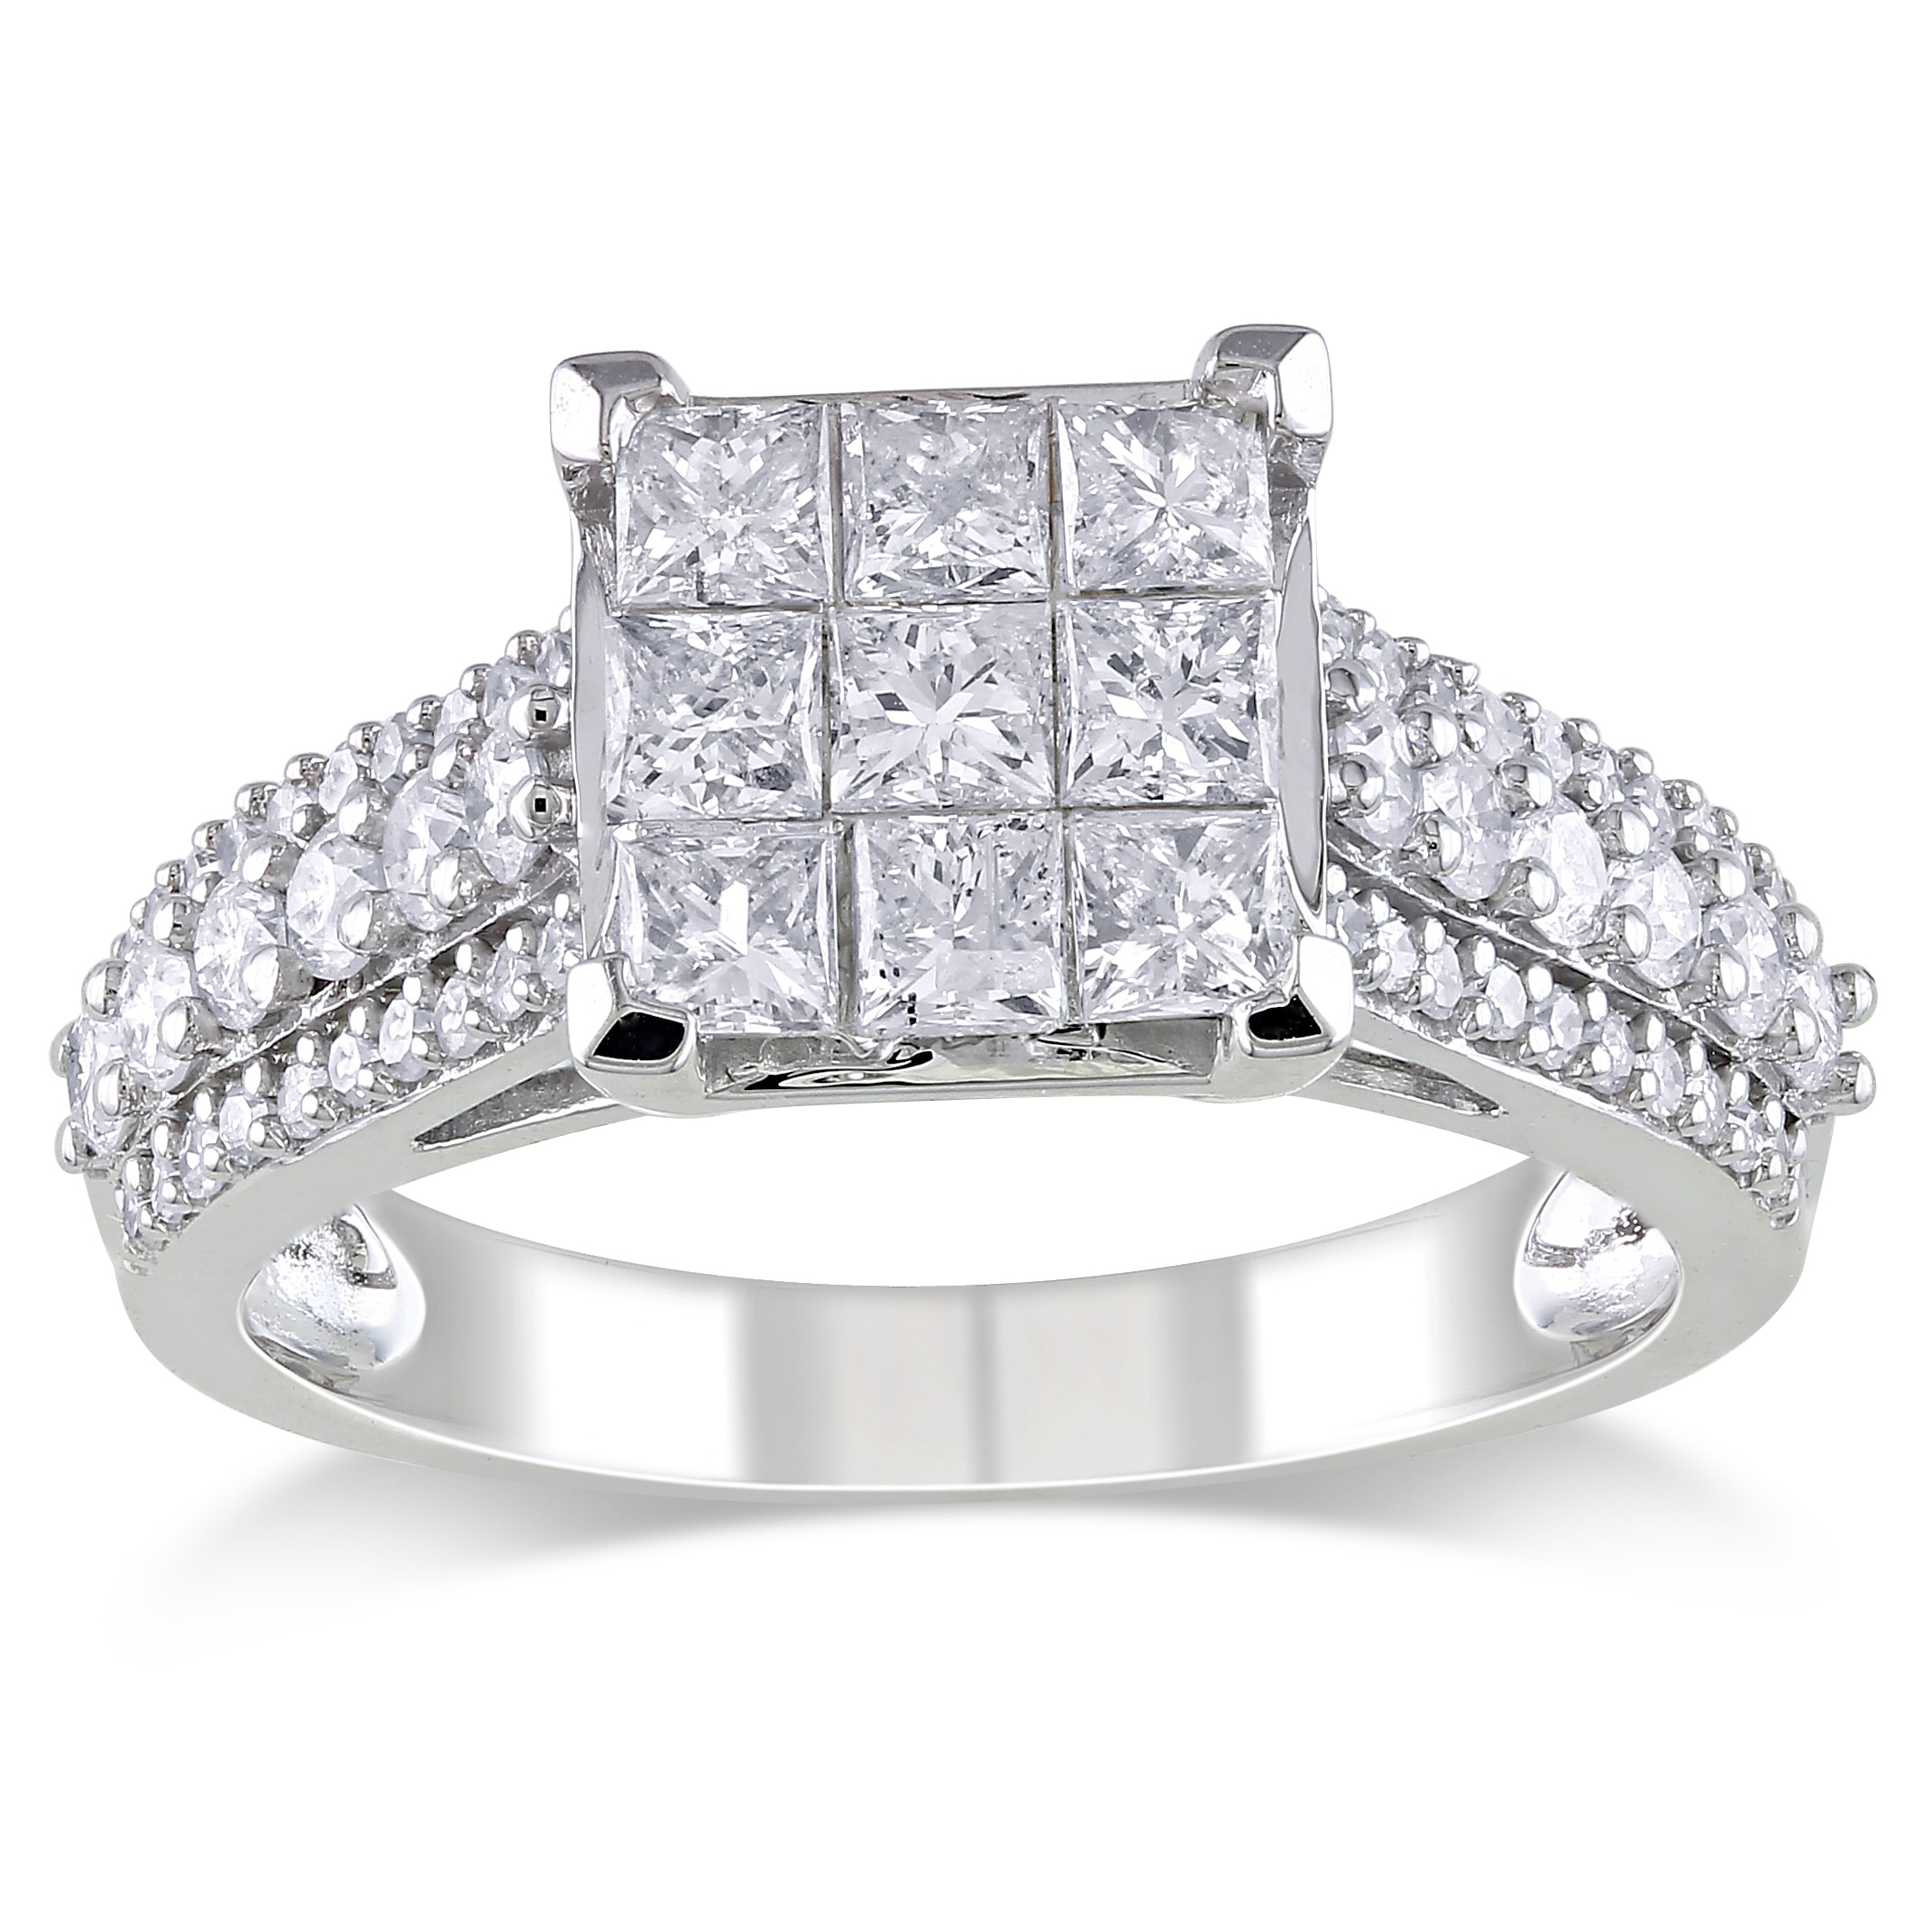 Miadora 10k White Gold 1 1/2ct TDW Diamond Engagement Ring